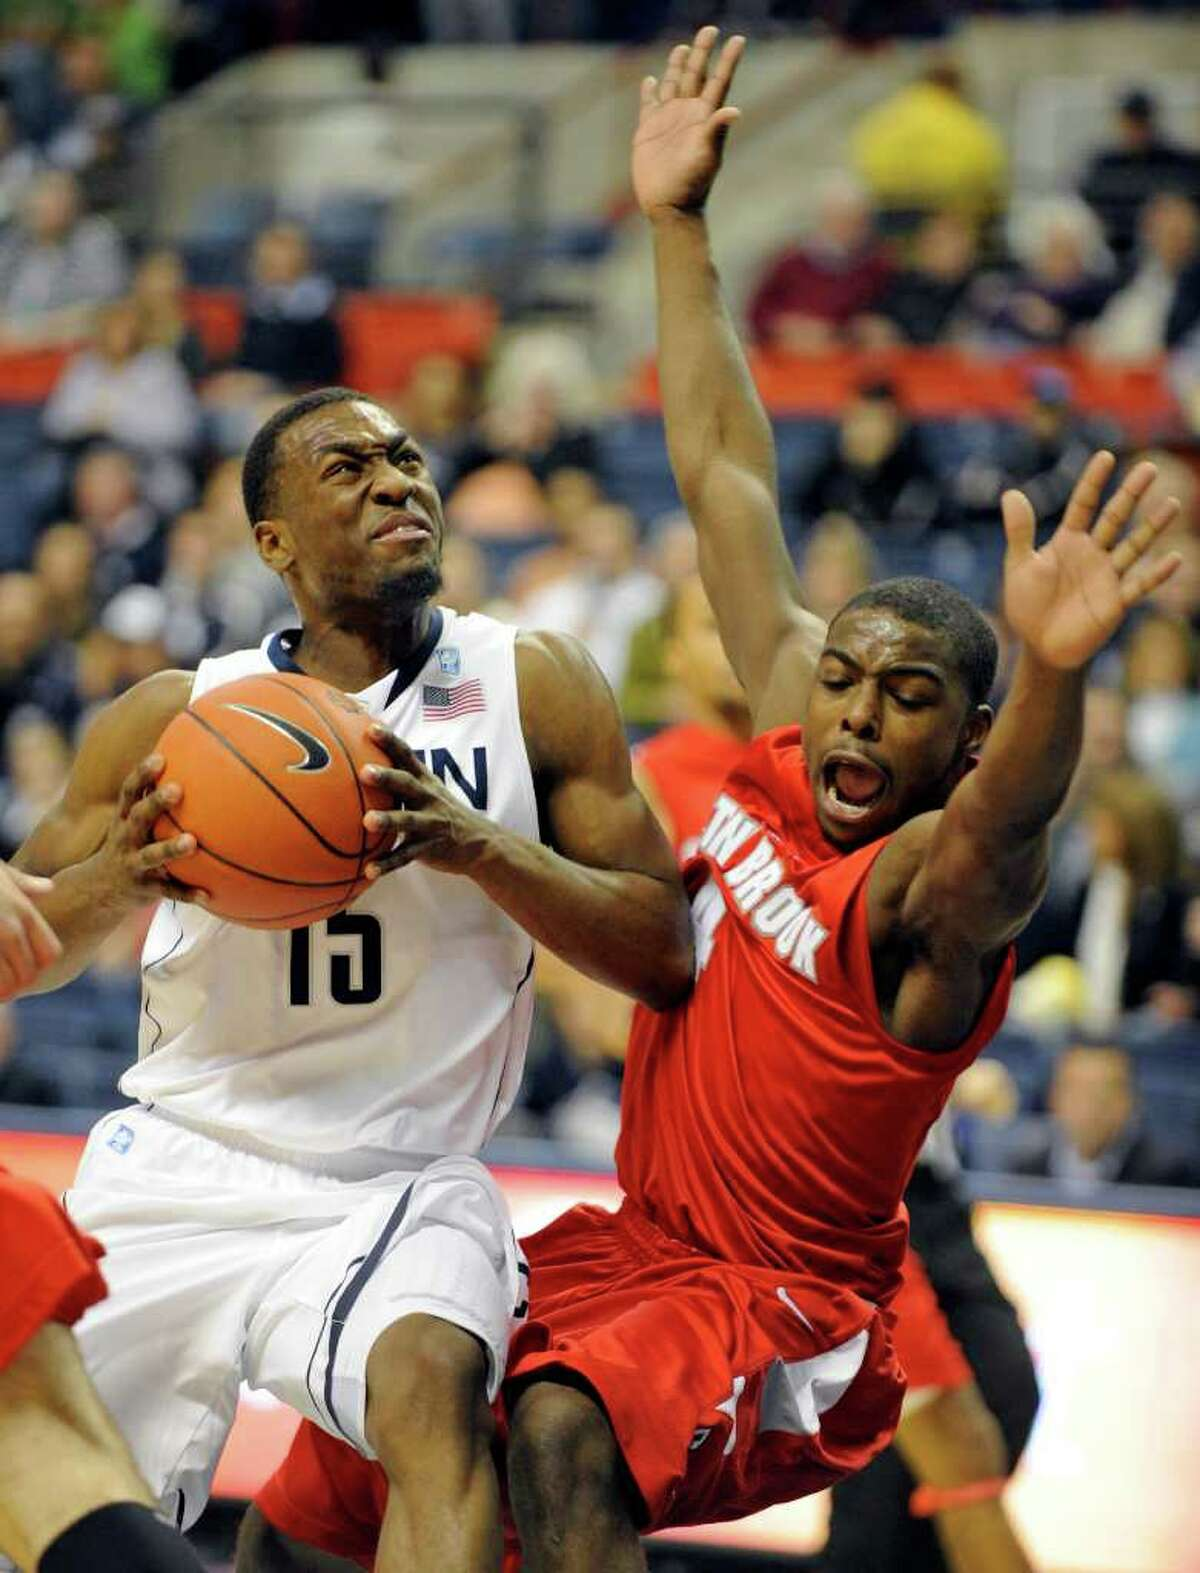 Connecticut's Kemba Walker, left, drives past Stony Brook's Anthony Jackson during the first half of their NCAA college basketball game in Storrs, Conn., on Friday, Nov. 12, 2010. (AP Photo/Fred Beckham)